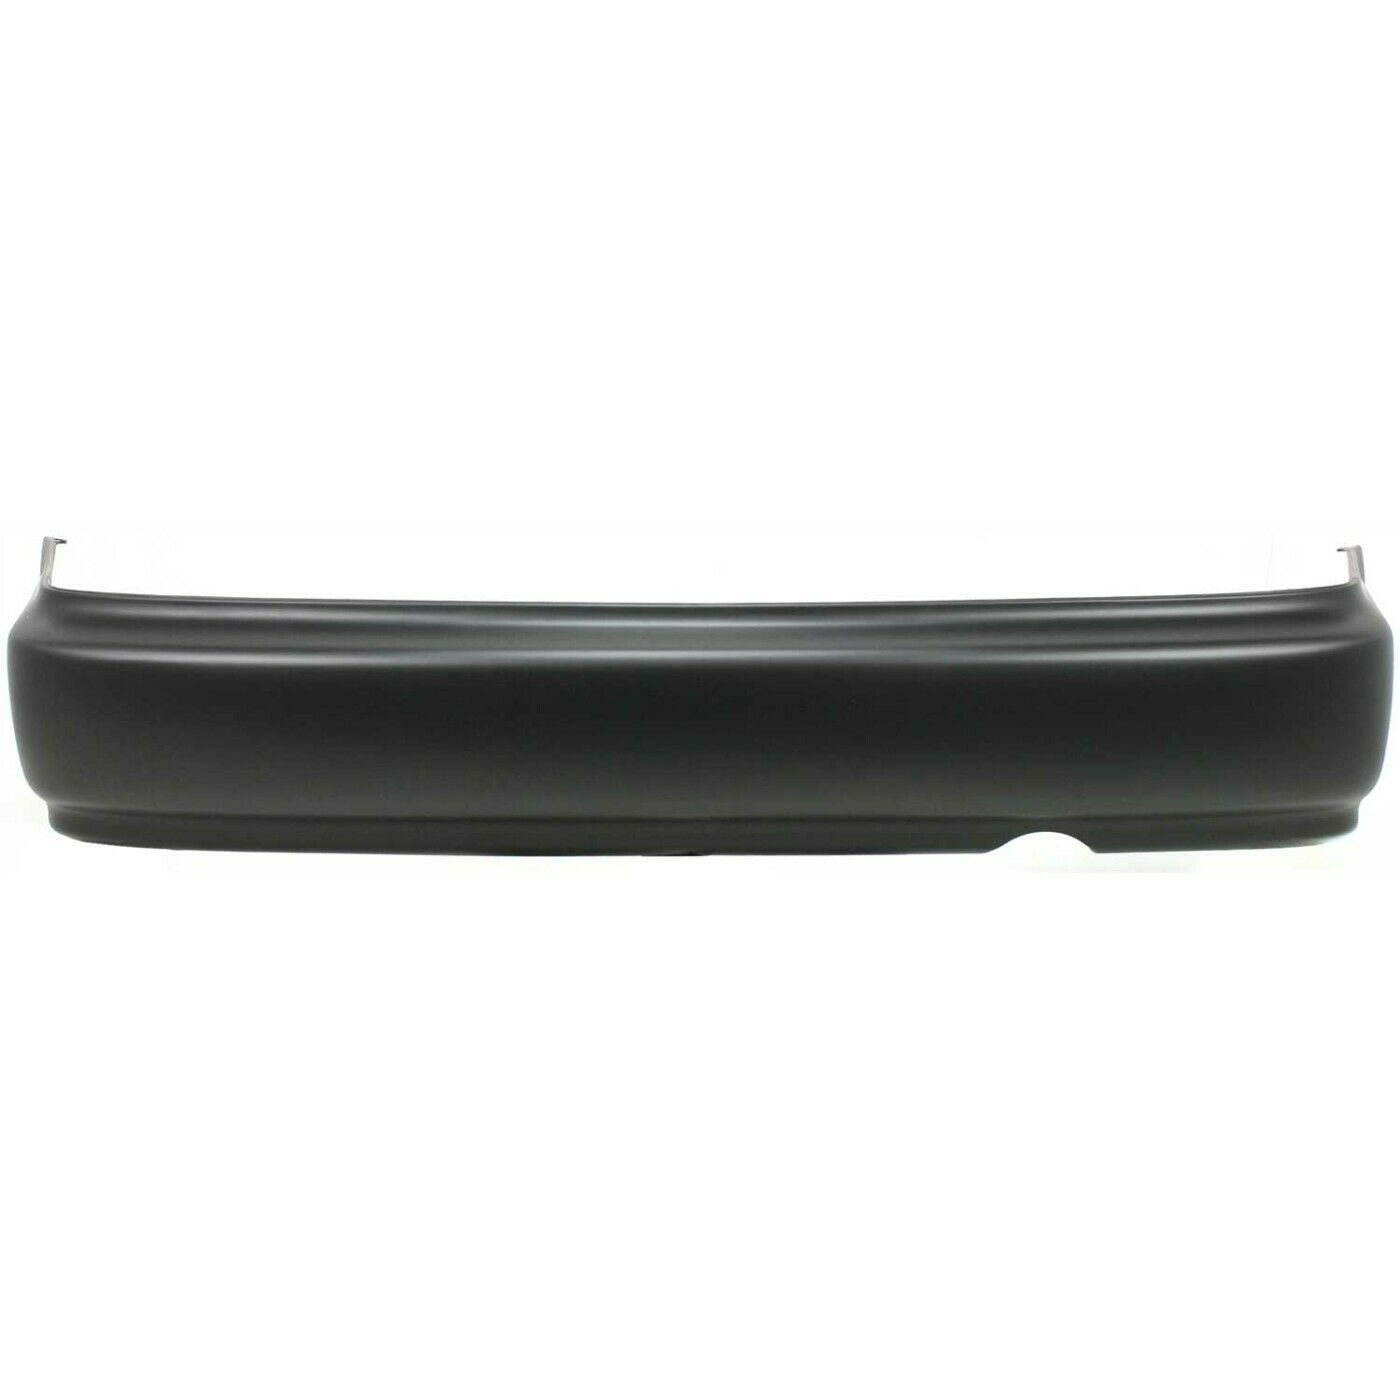 1996-1998 Honda Civic Coupe Rear Bumper